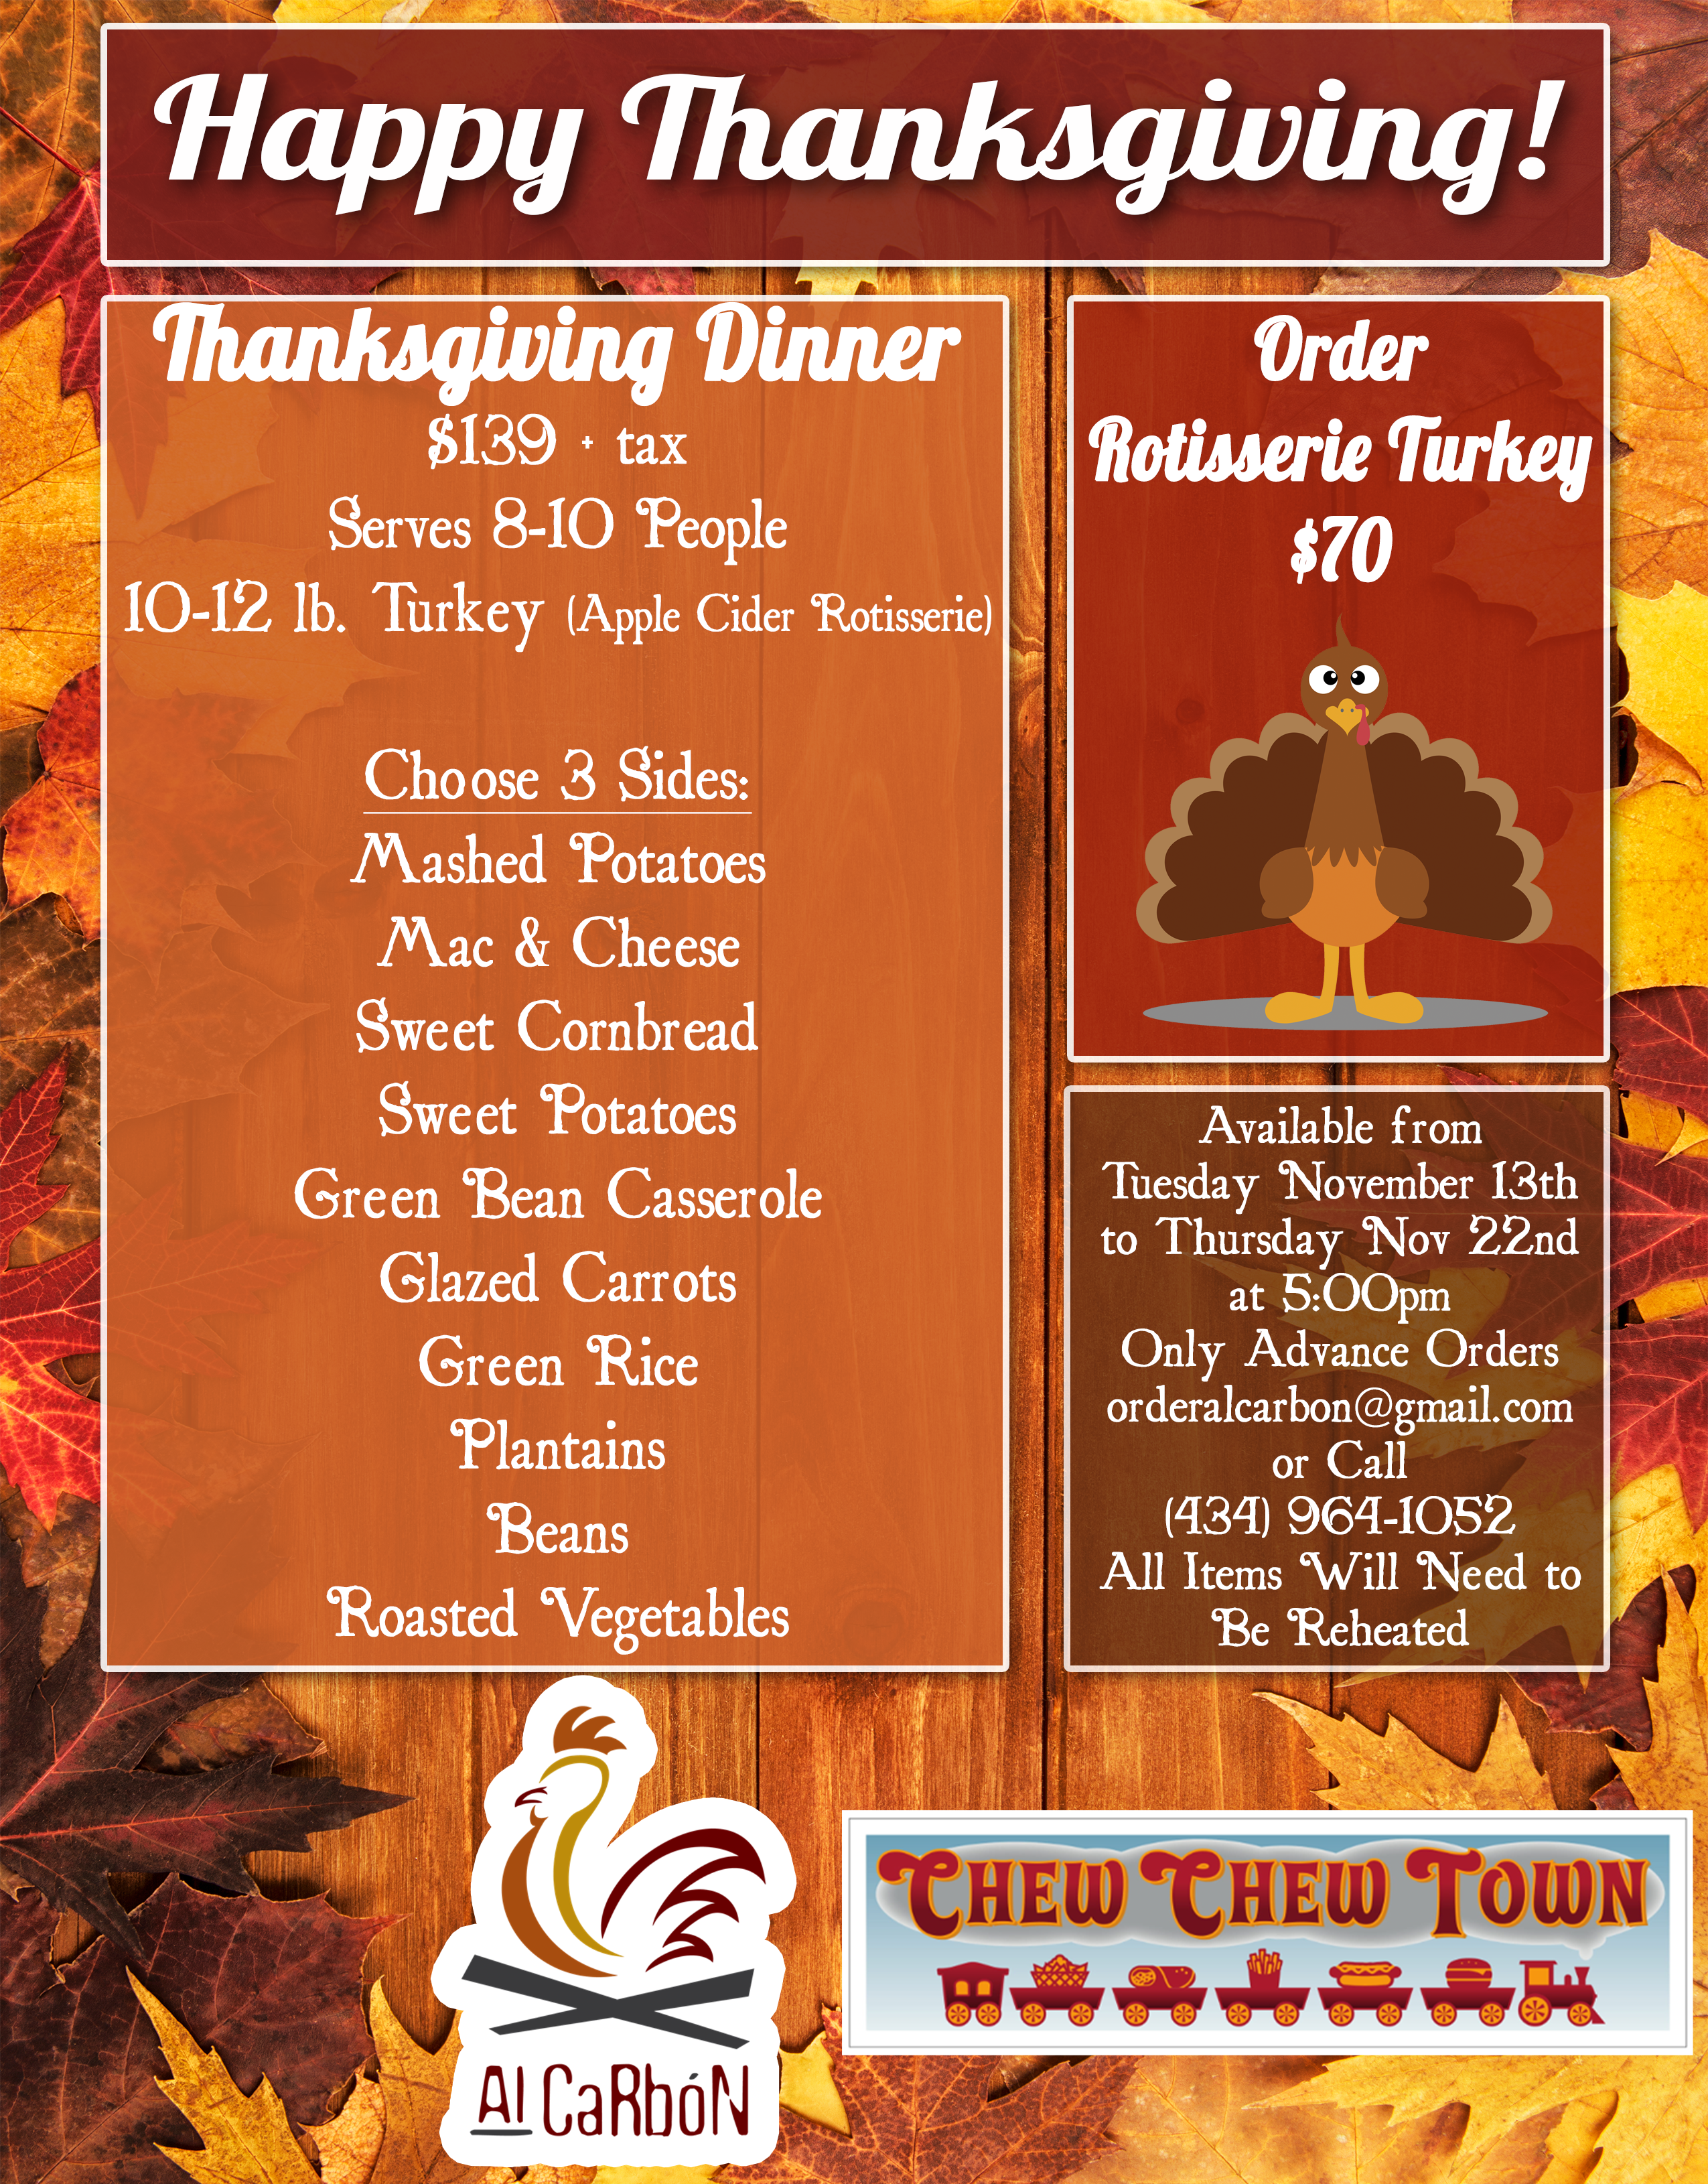 Thanksgiving Dinner $139 + tax Serves 8-10 People 10-12 lb. Turkey (Apple Cider Rotisserie)  Choose 3 Sides: Mashed Potatoes Mac & Cheese Sweet Cornbread Sweet Potatoes Green Bean Casserole Glazed Carrots Green Rice Plantains Beans Roasted Vegetables. Order Rotisserie Turkey $70. Available from  Tuesday November 13th to Thursday Nov 22nd at 5:00pm Only Advance Orders orderalcarbon@gmail.com or Call  (434) 964-1052 All Items Will Need to Be Reheated Al Carbon & Chew Chew Town